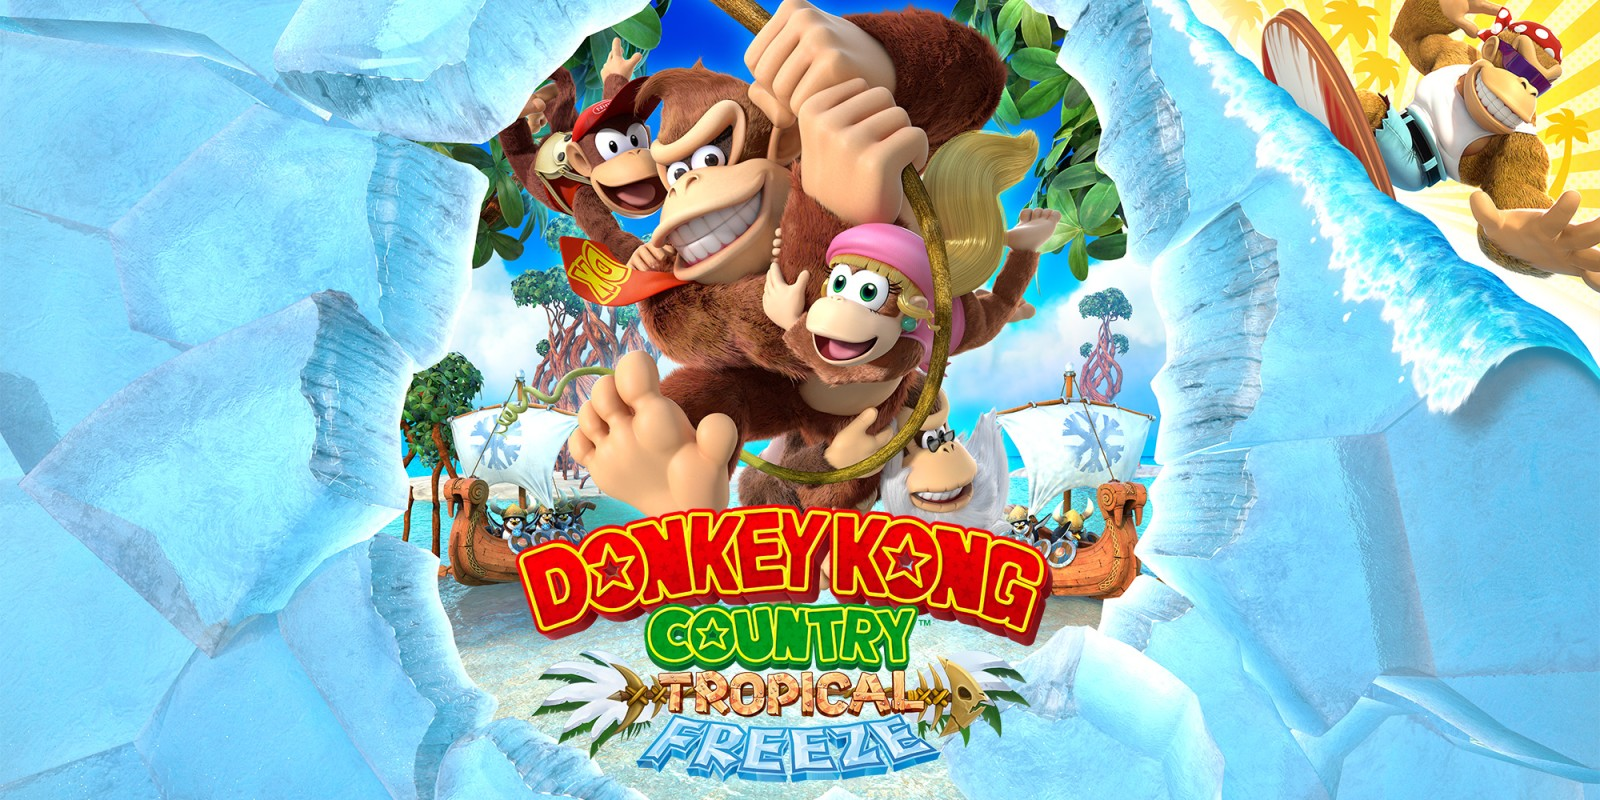 Donkey Kong Tropical Freeze Disappears from Wii U eShop